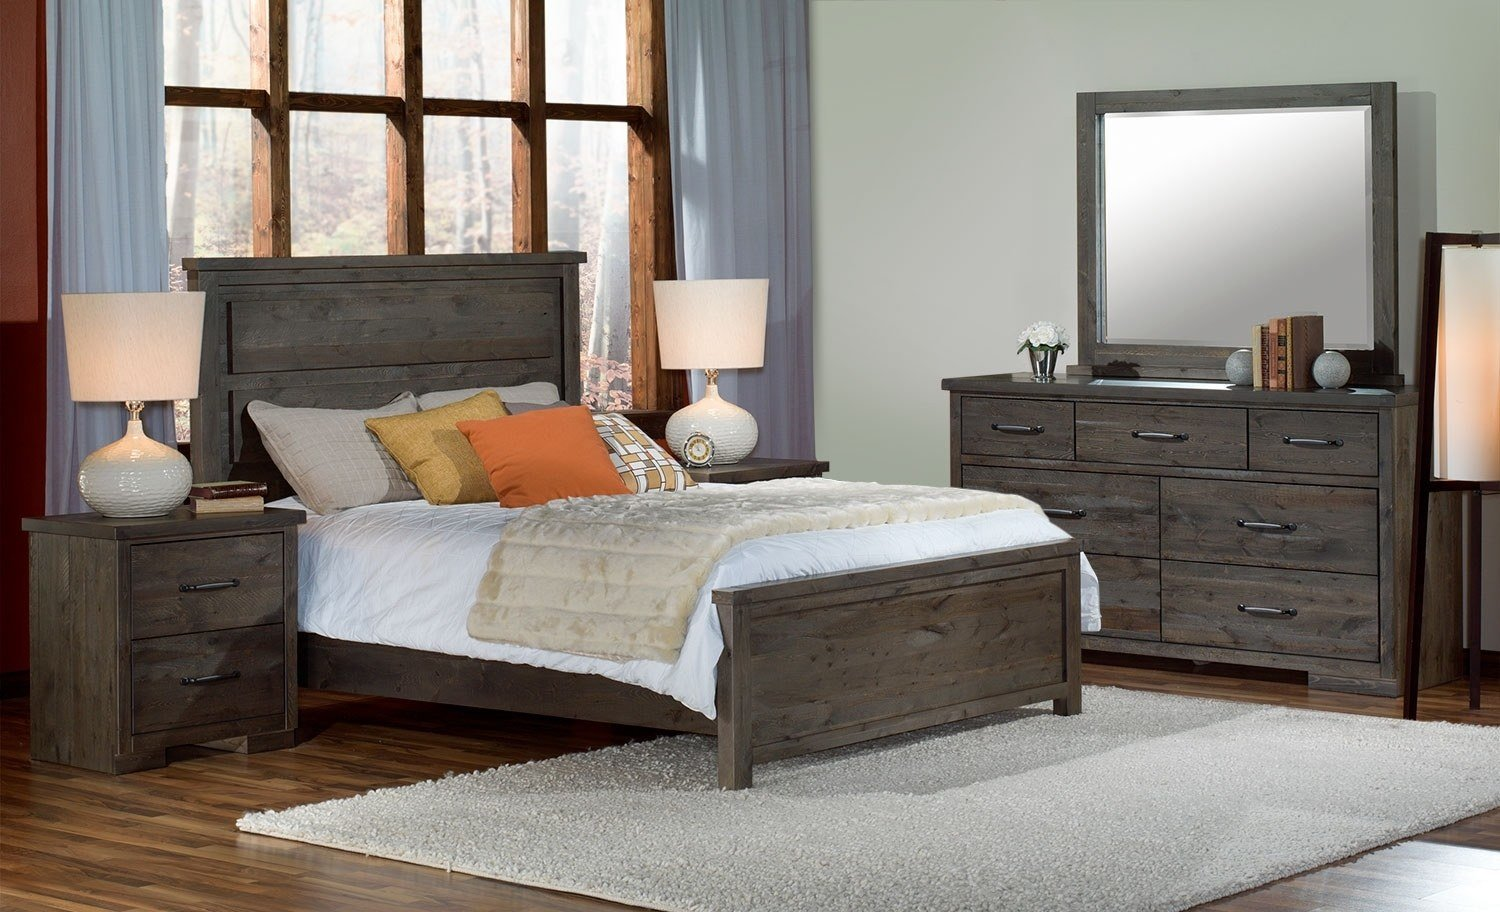 Best Pine Ridge 5 Piece Queen Bedroom Set Slate Leon S With Pictures